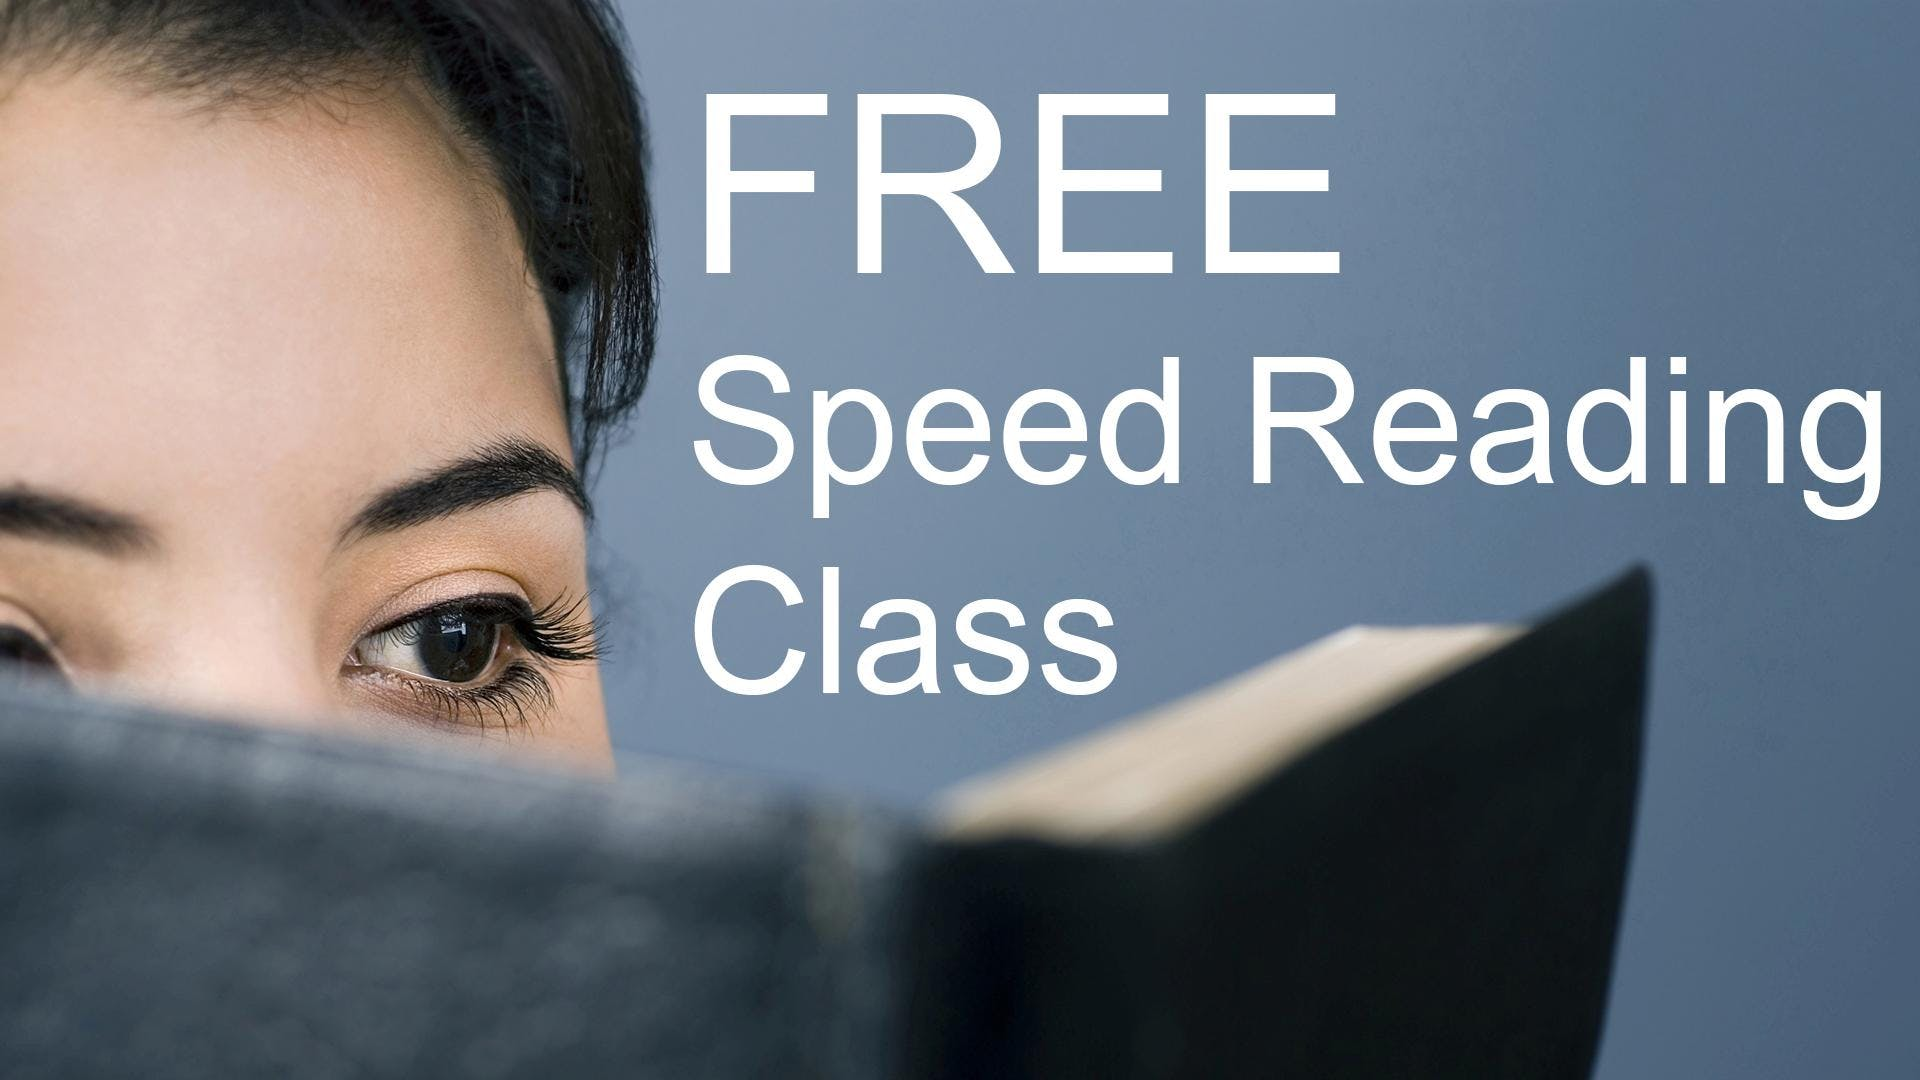 Free Speed Reading Class - San Jose